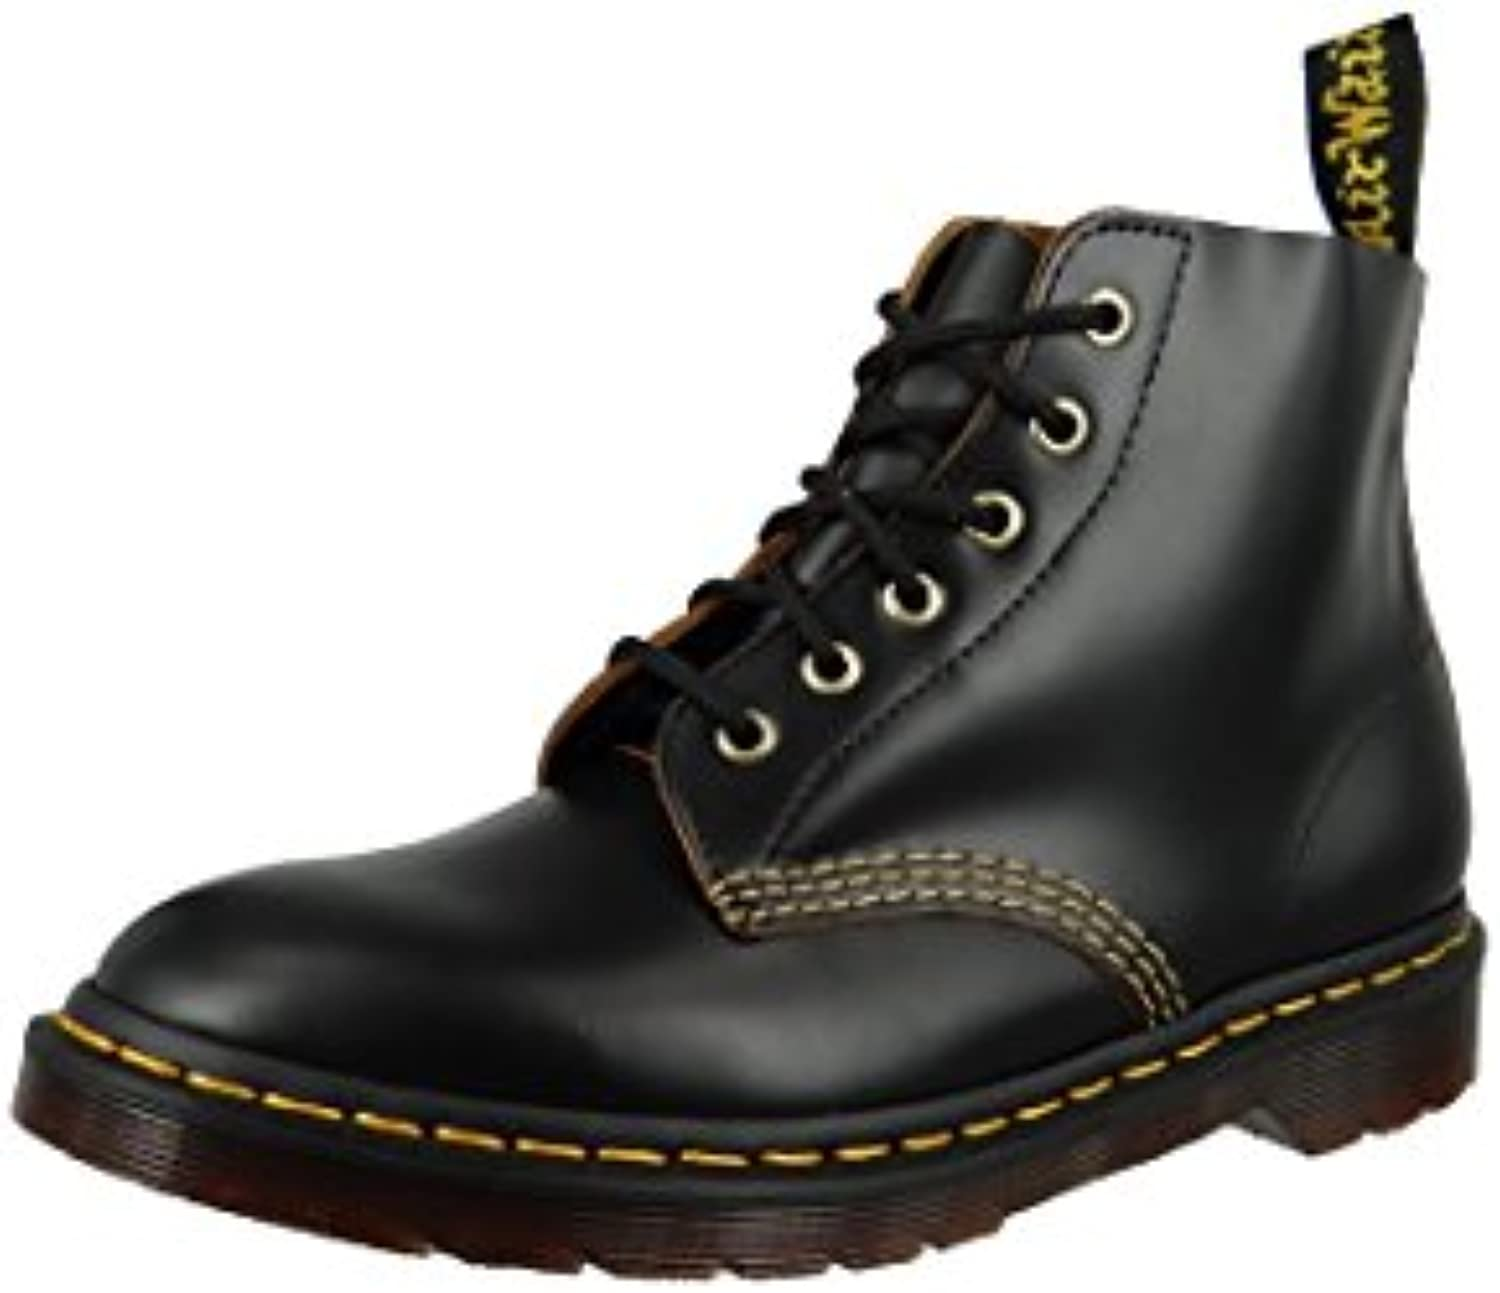 Dr.Martens Womens 101 Arc 6 Eyelet Leather BootsDr Martens Vintage Smooth 22701001